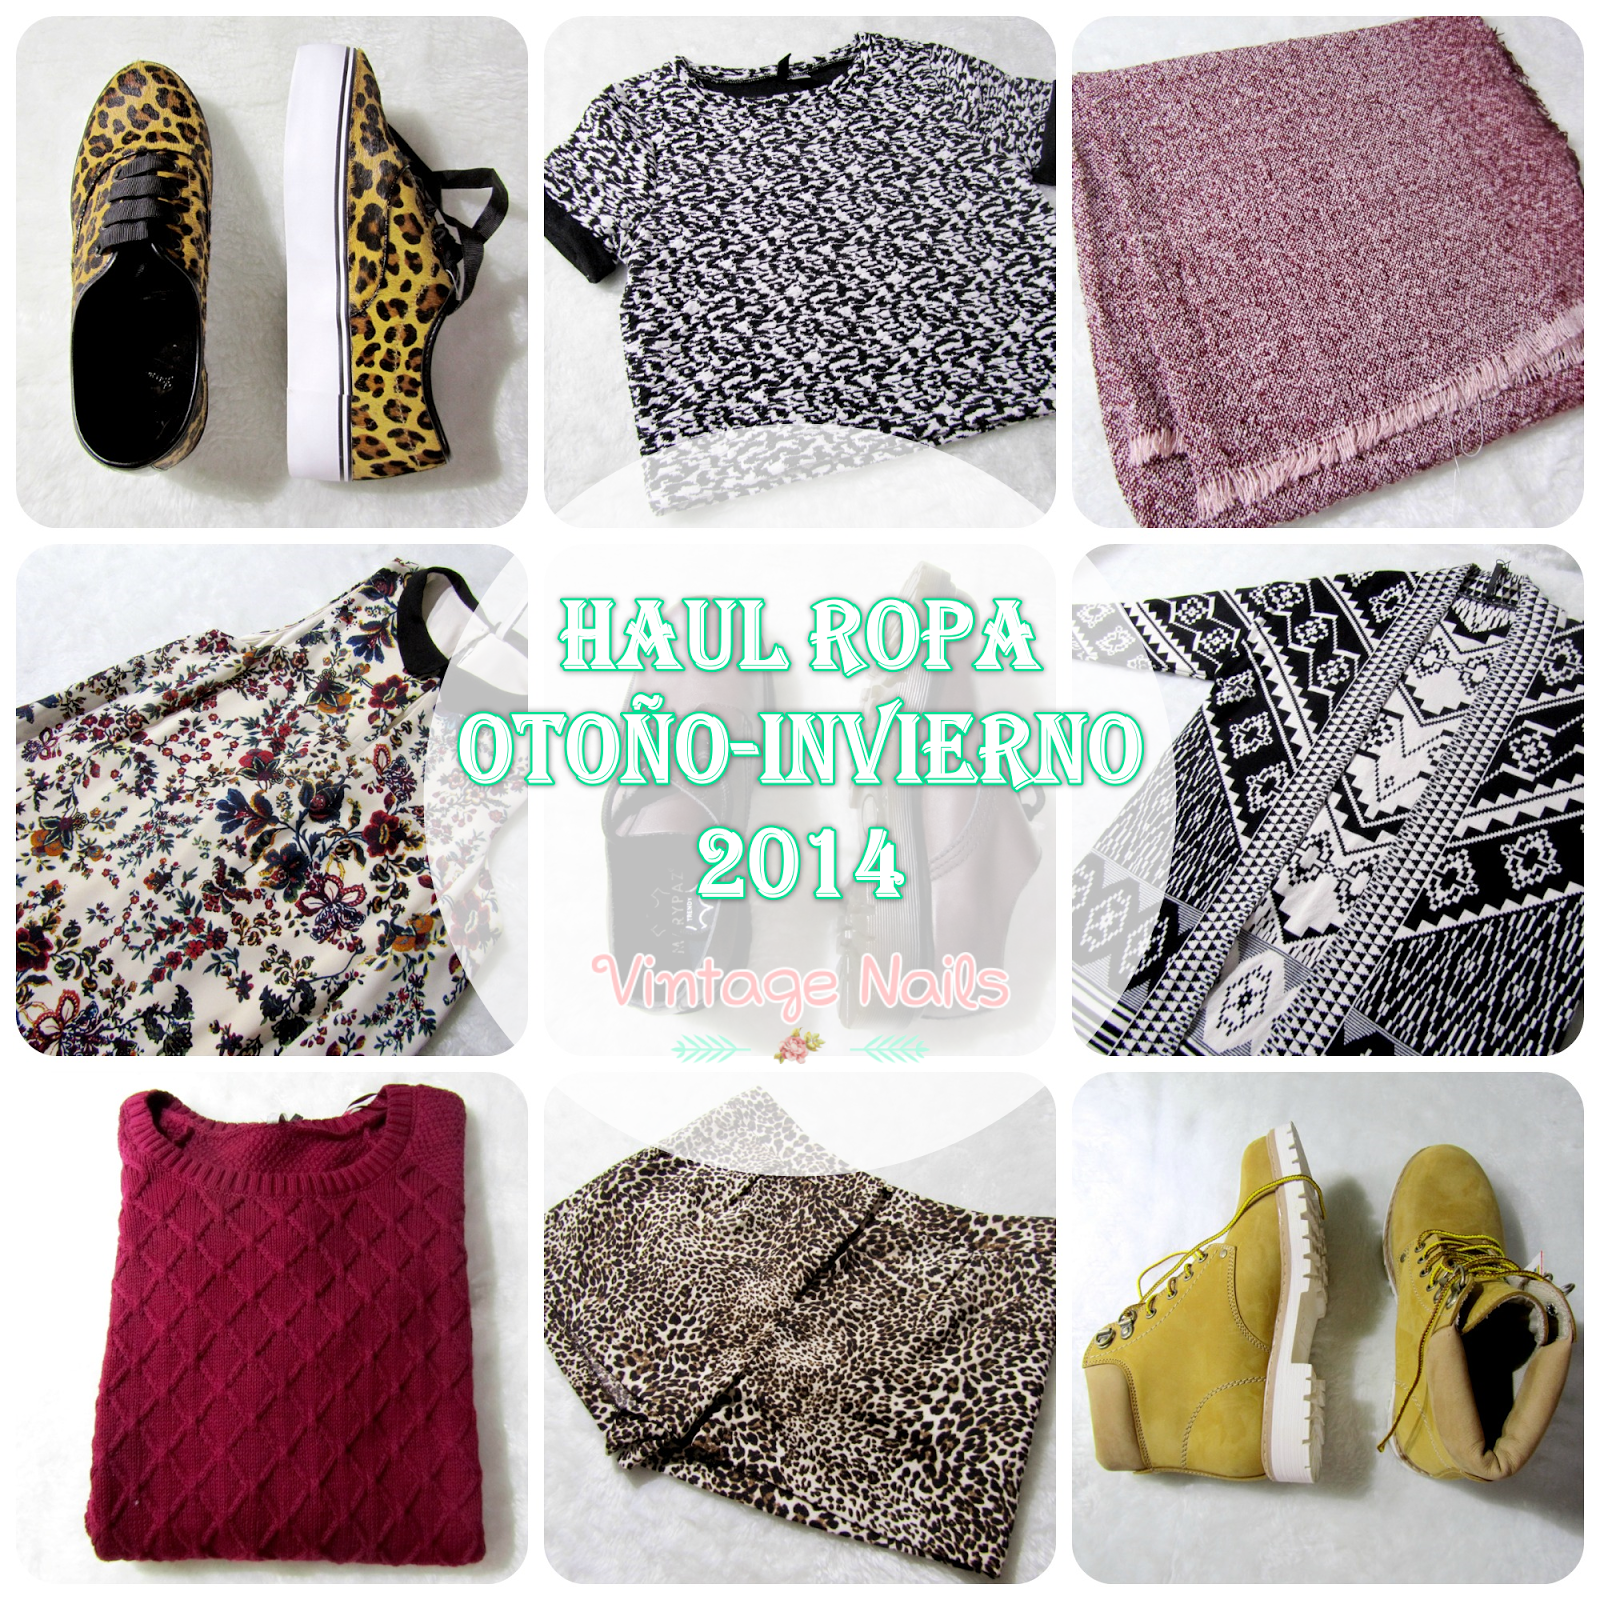 haul, ropa, stradivarius, zara, blanco, marypaz, bambas, botas, vestido, cardigan, shorts, animal print, dress, sneakers, scarf, bufanda, shoes, handbag, bolso, crop top, H&M, outfit, look, vintage, style